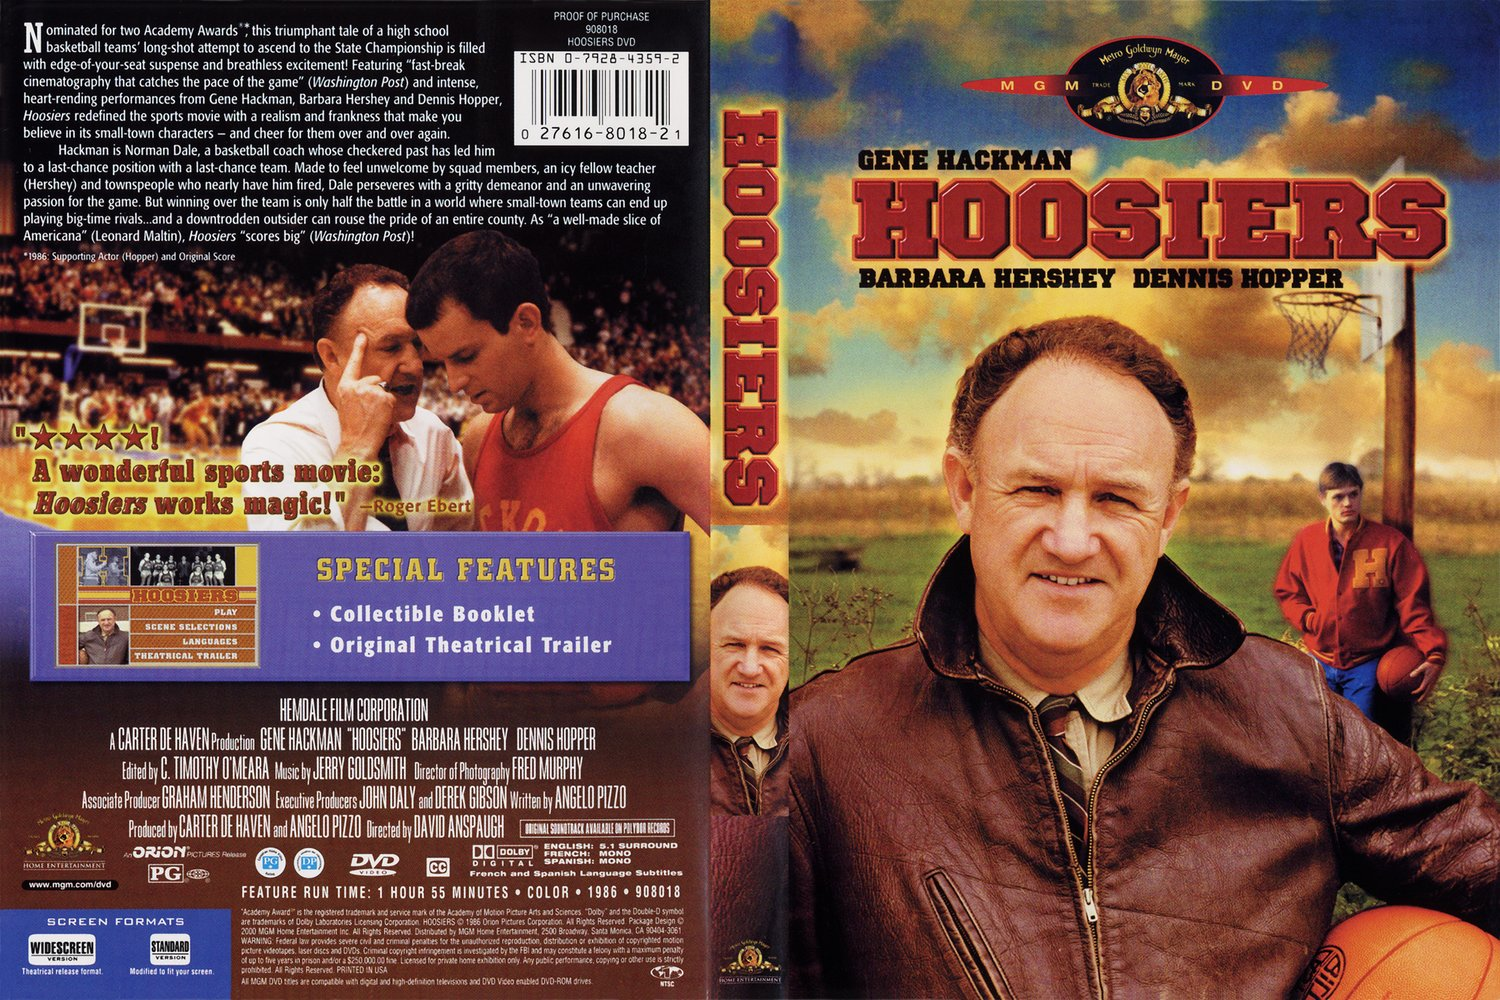 Hoosiers movie screenplay